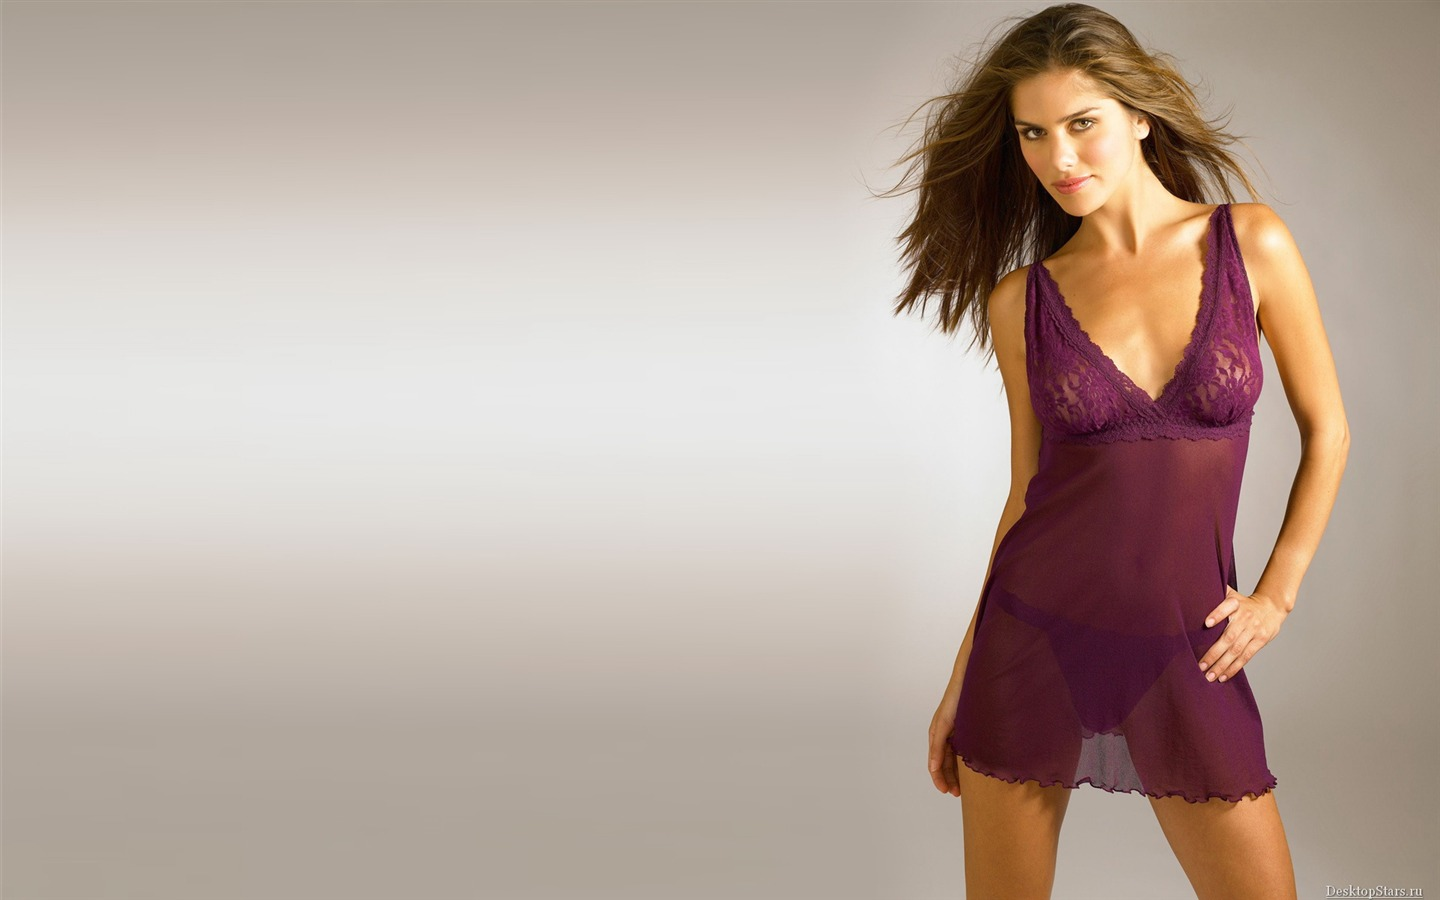 Anahi Gonzales #034 - 1440x900 Wallpapers Pictures Photos Images